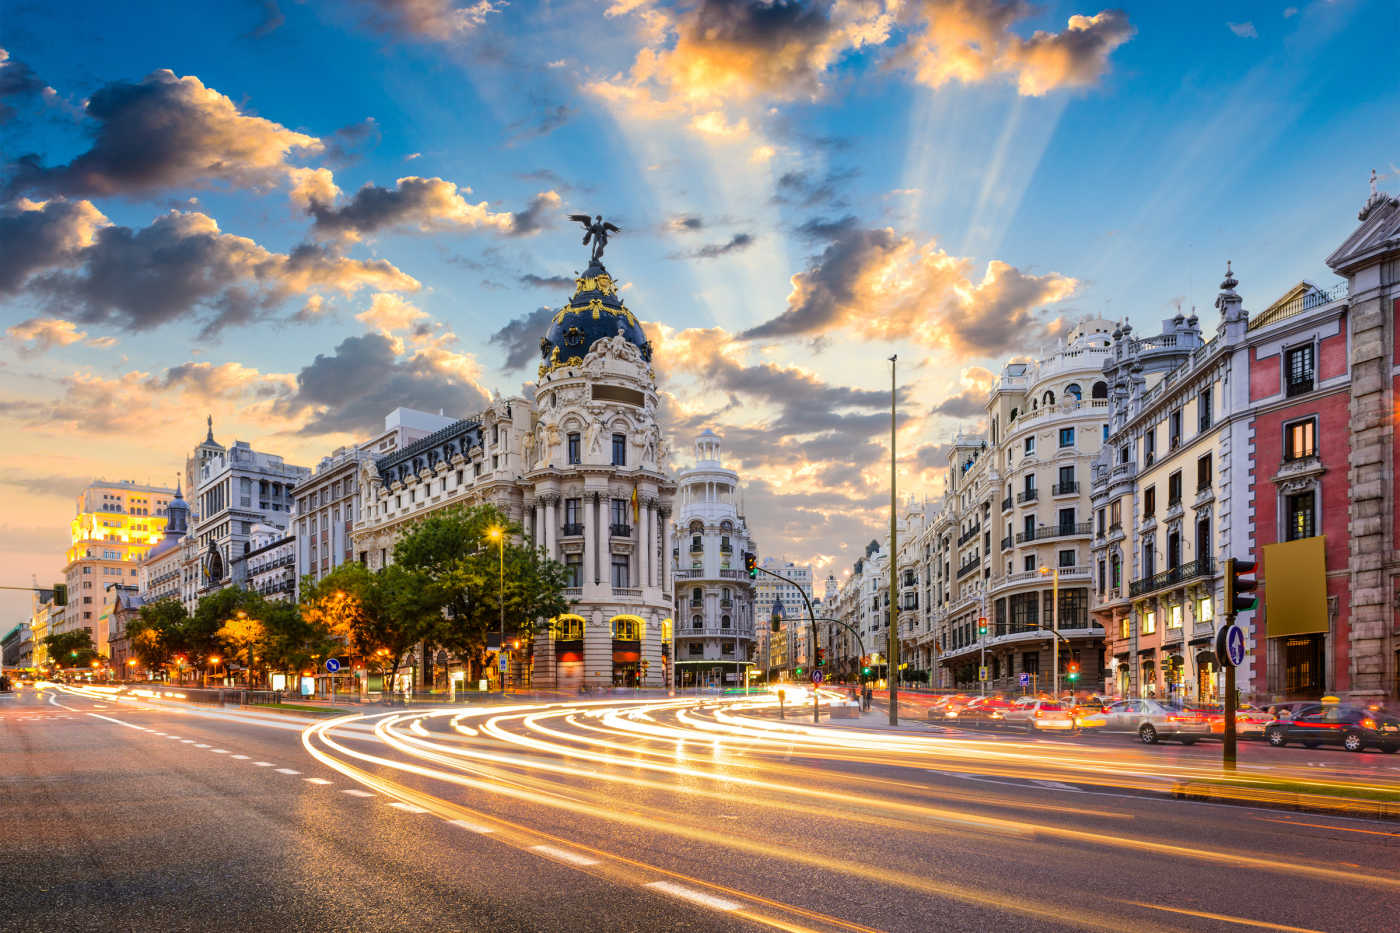 Spain Vacation Package Deals February Best Travel Deals - Spain vacation package